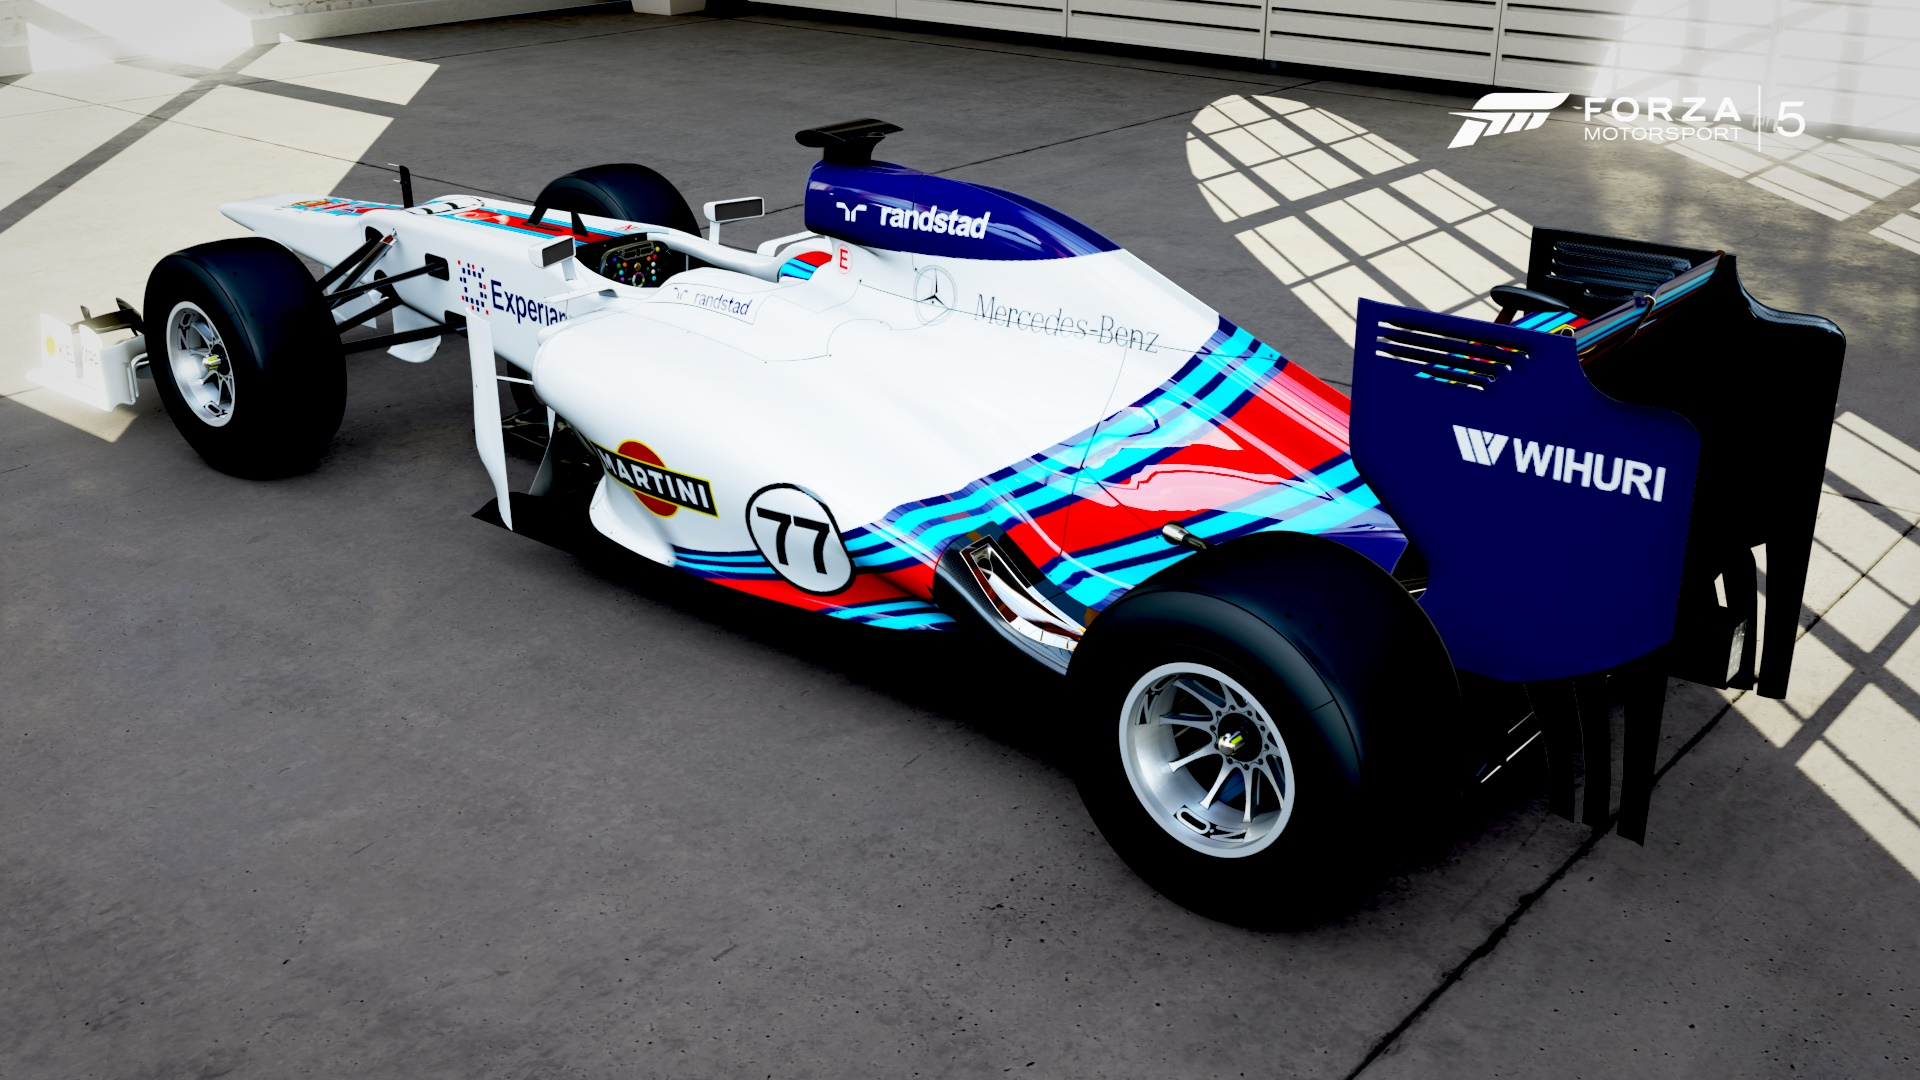 Forza Motorsport 5: Grafikán a Martini Williams F1 Team festése